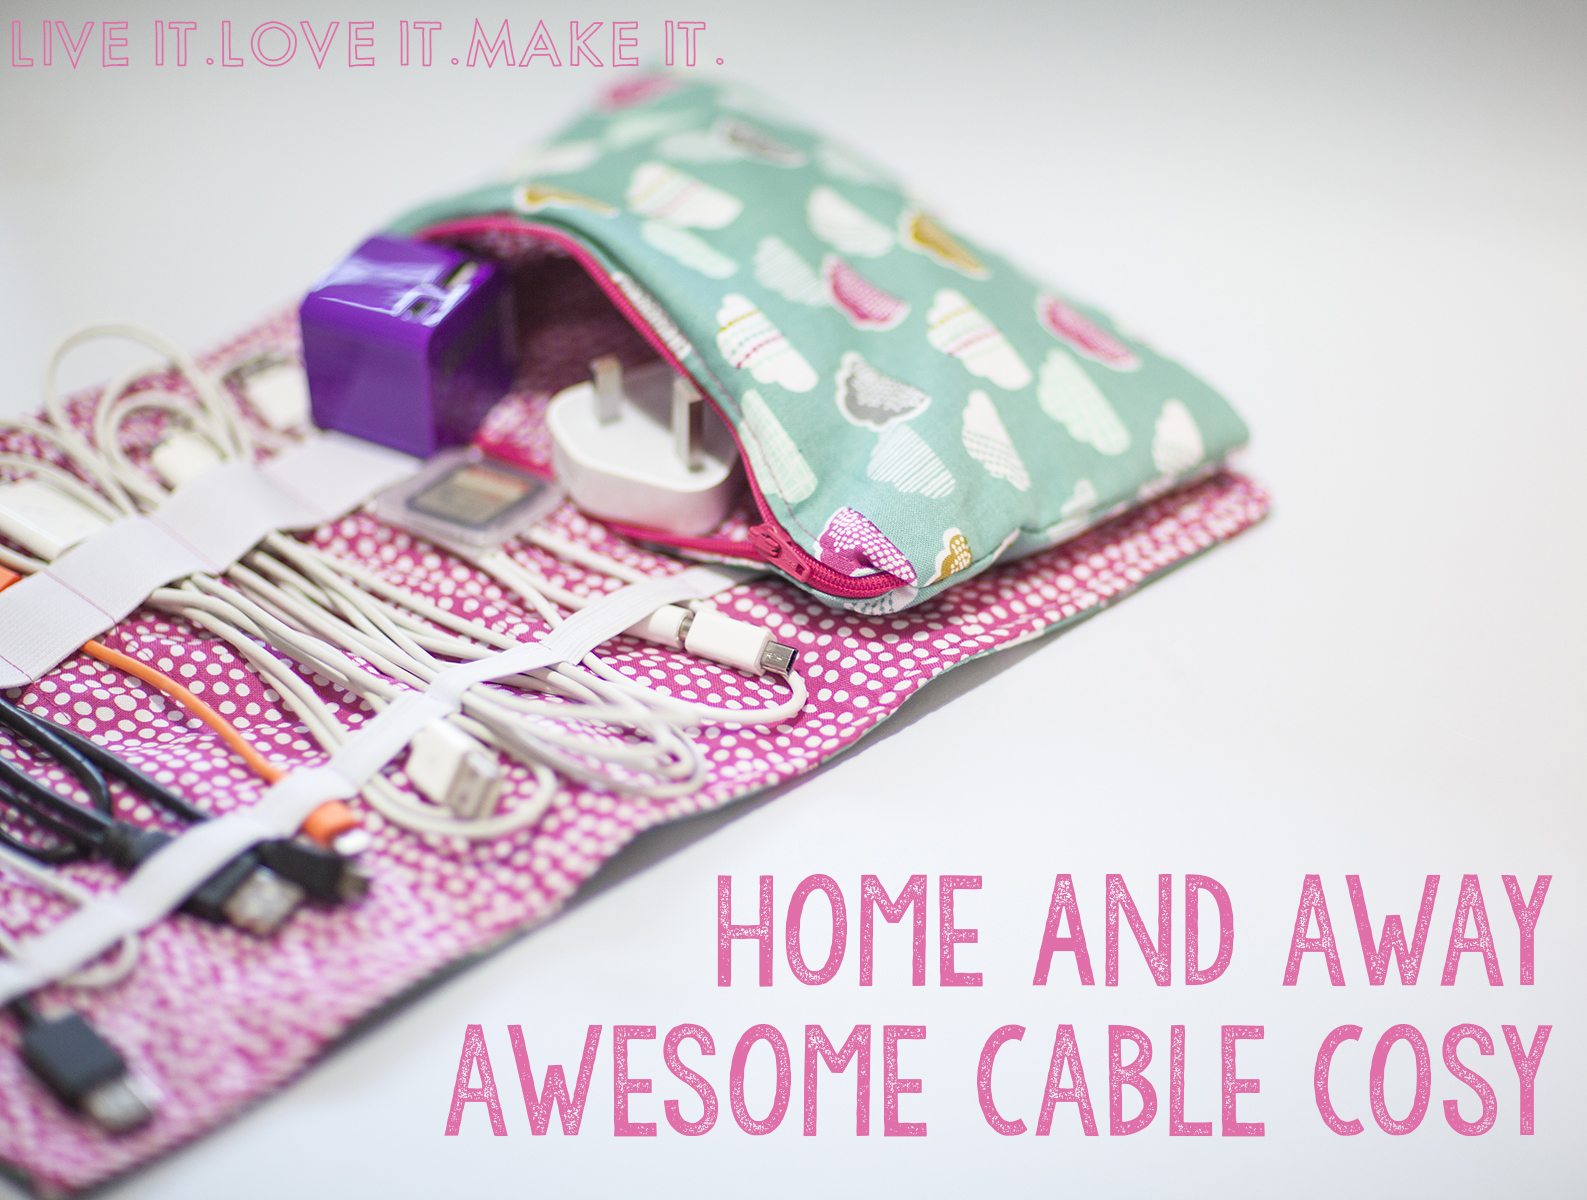 Live it . Love it . Make it.: Makers Month: Make it: Cable Cosy + ...